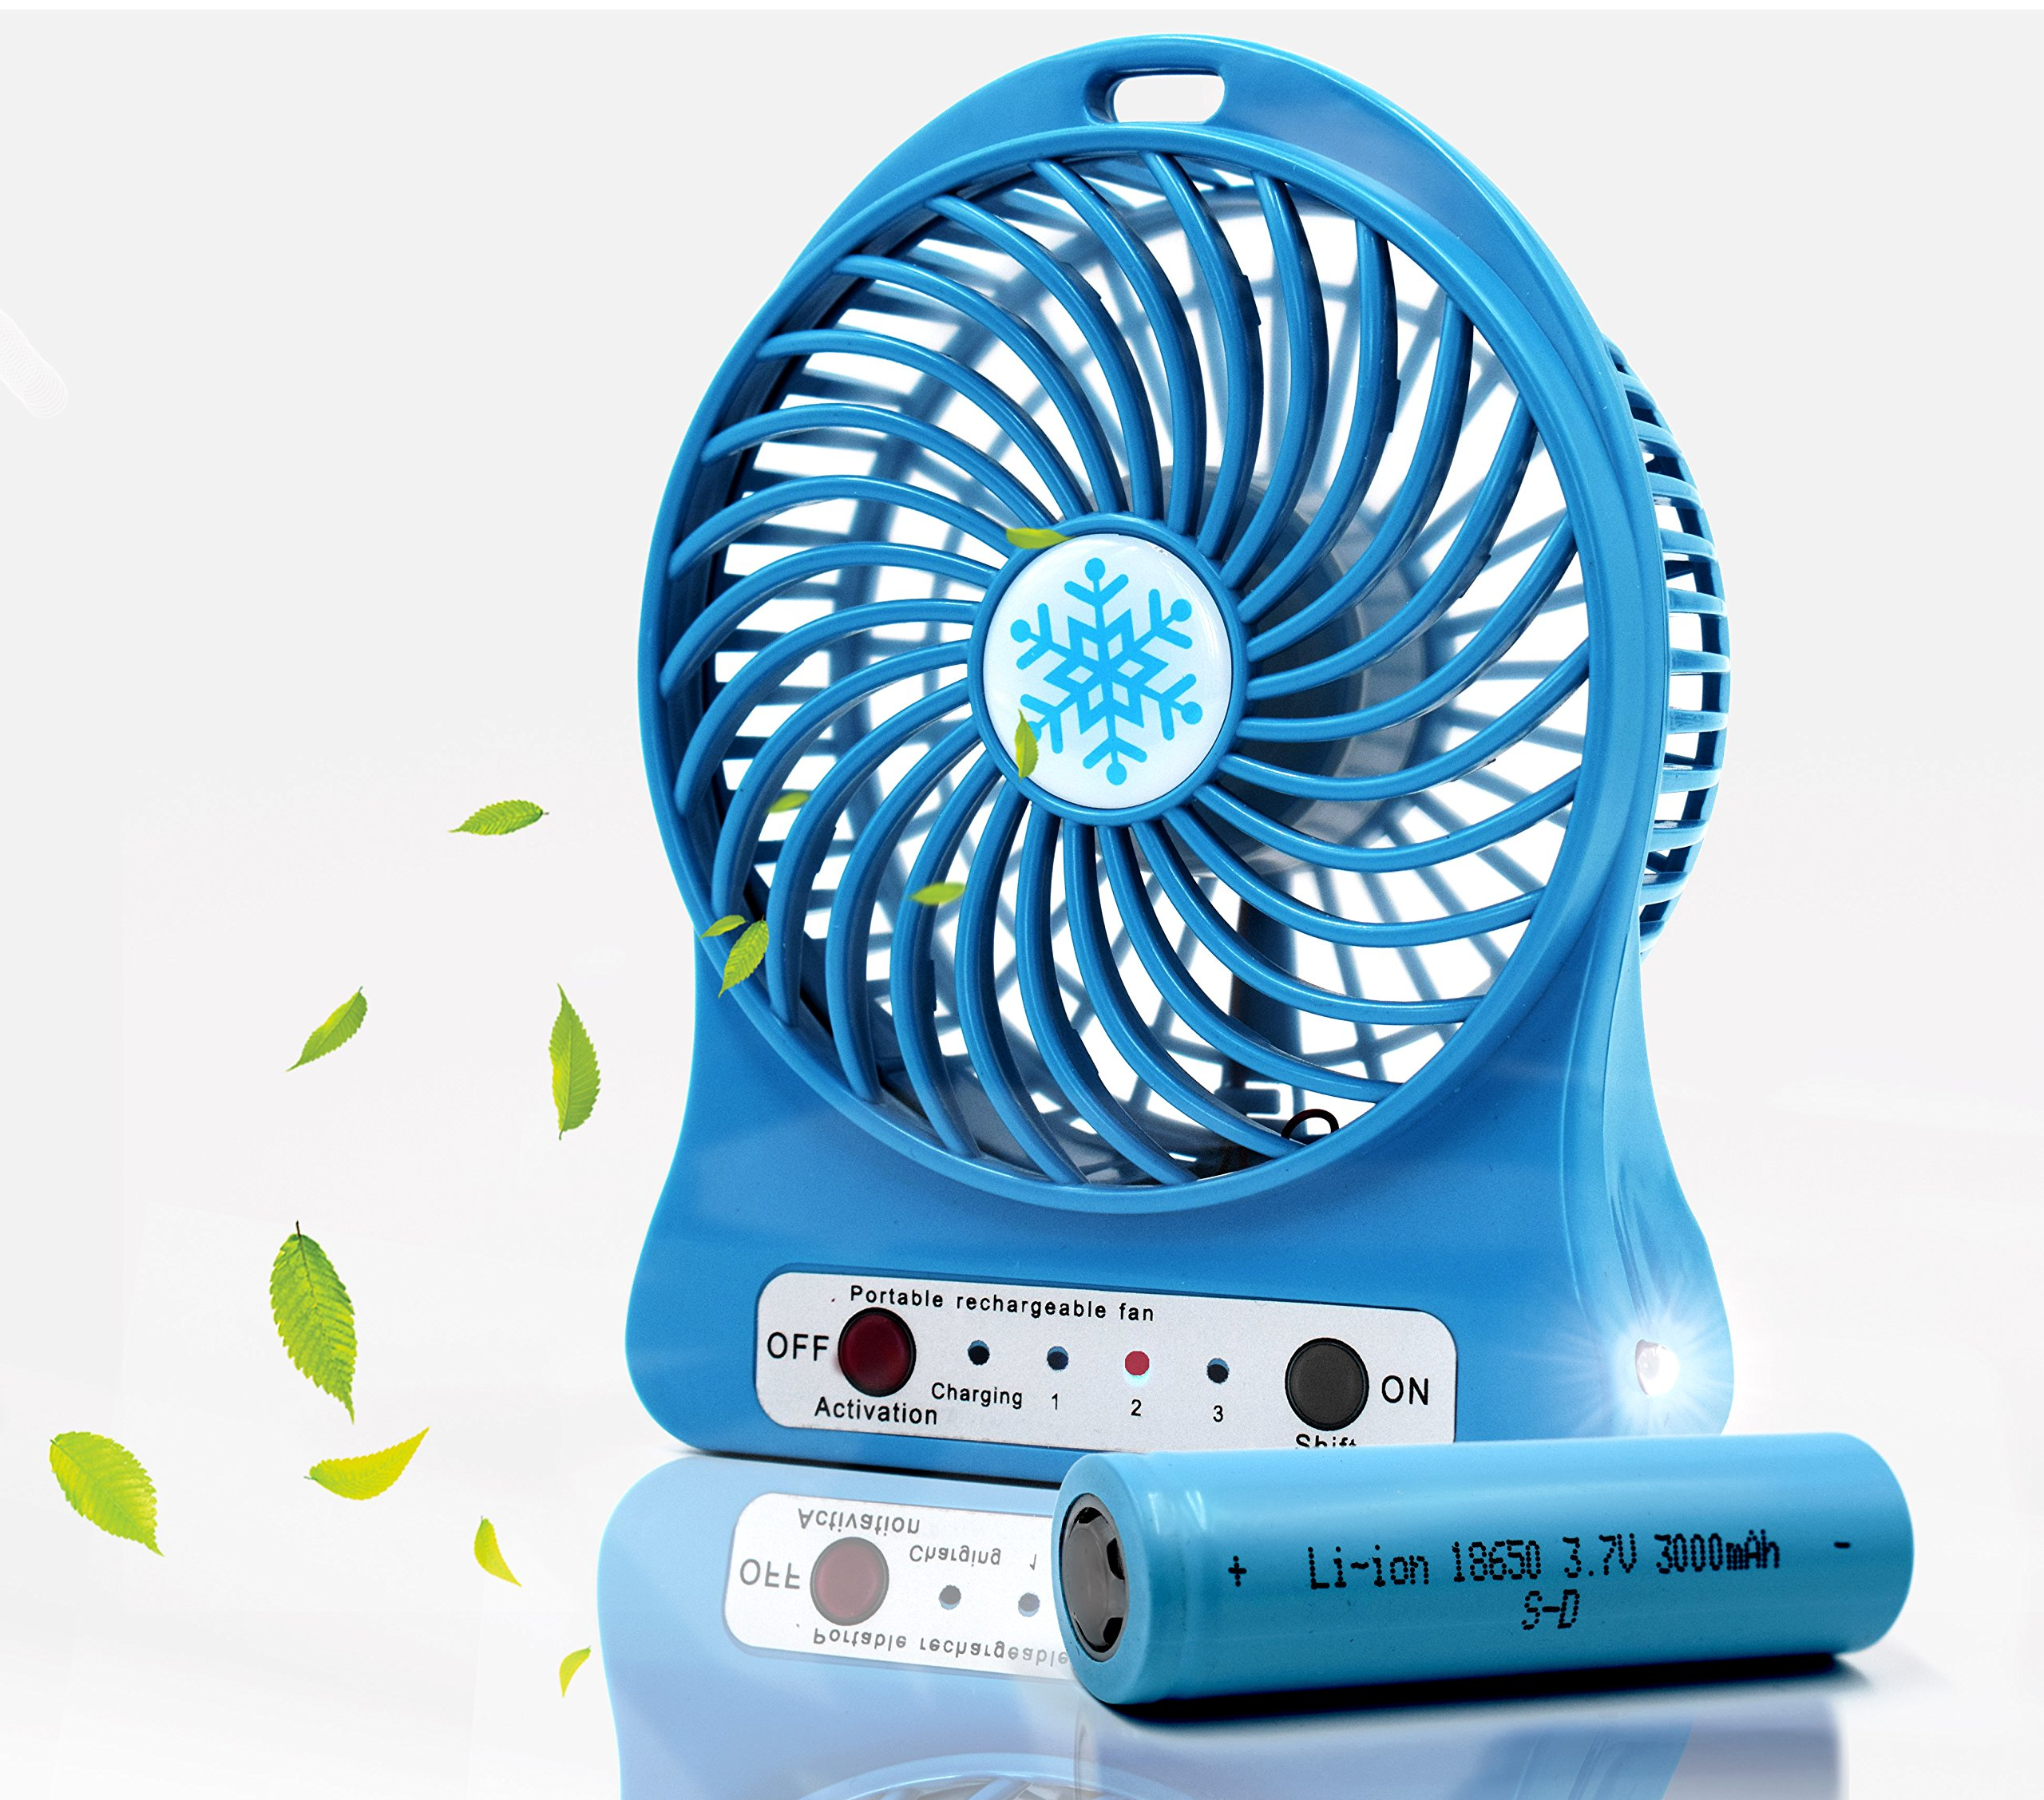 Haoerliang USB Table Desk Protable rechargeable mini fan with LED light,quiet and large air flow (Blue)